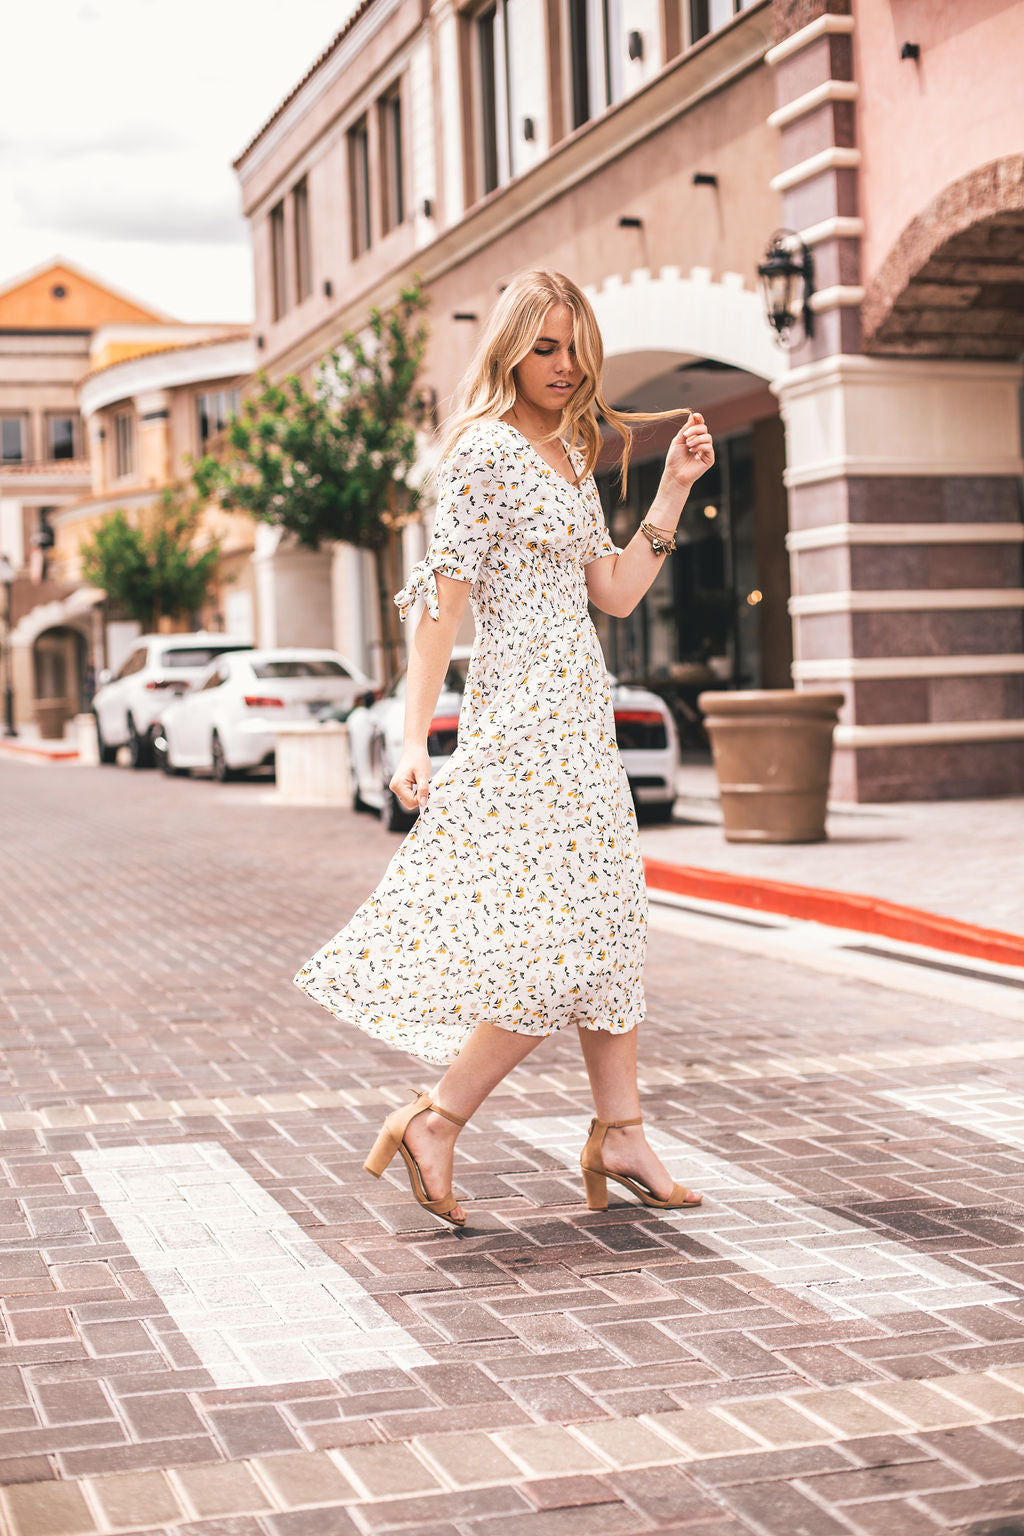 THE IVY FLORAL MIDI DRESS IN WHITE